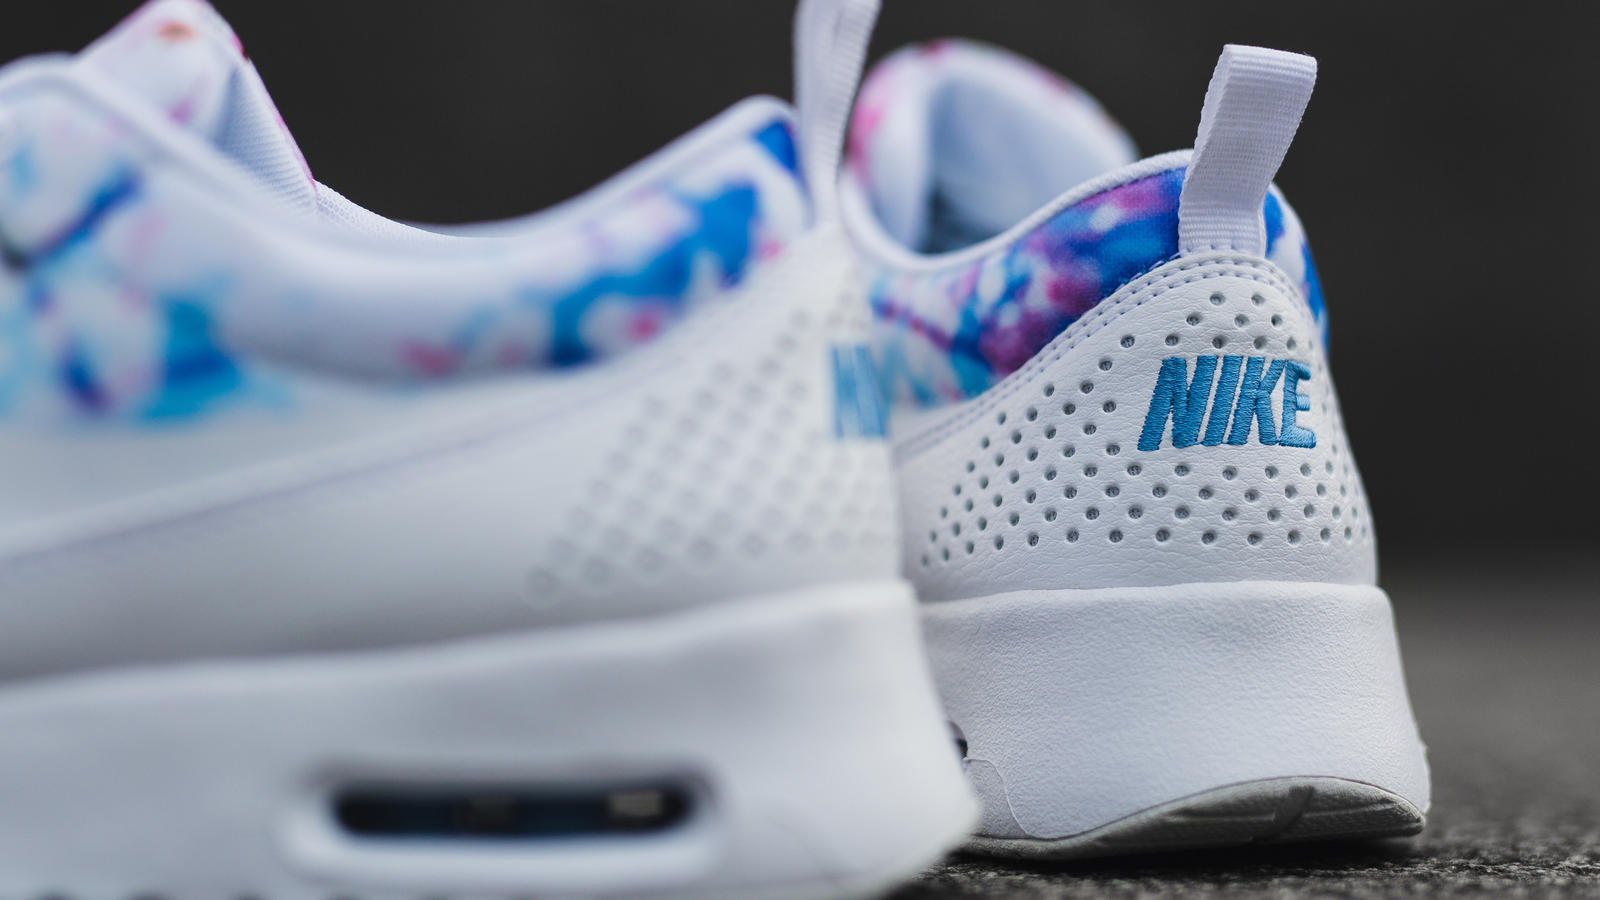 Nike air max thea print 1 hd 1600